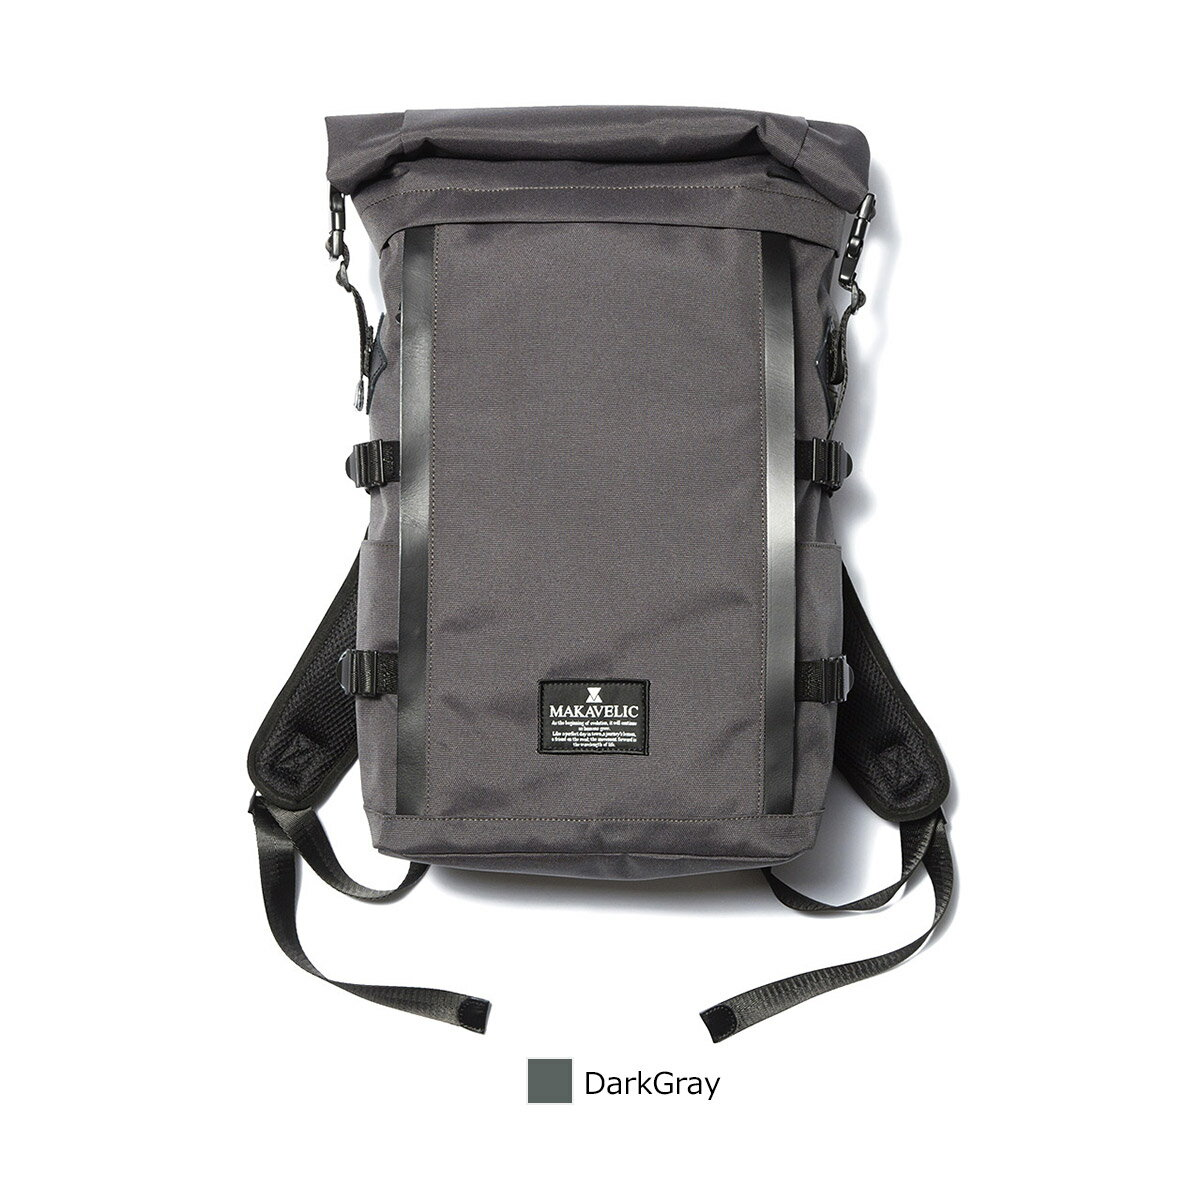 【SALE】【正規販売店】マキャベリック サイクリスト バックパック リュック ロールトップ CHASE CYCLIST BACKPACK MAKAVELIC 3106-10120dg